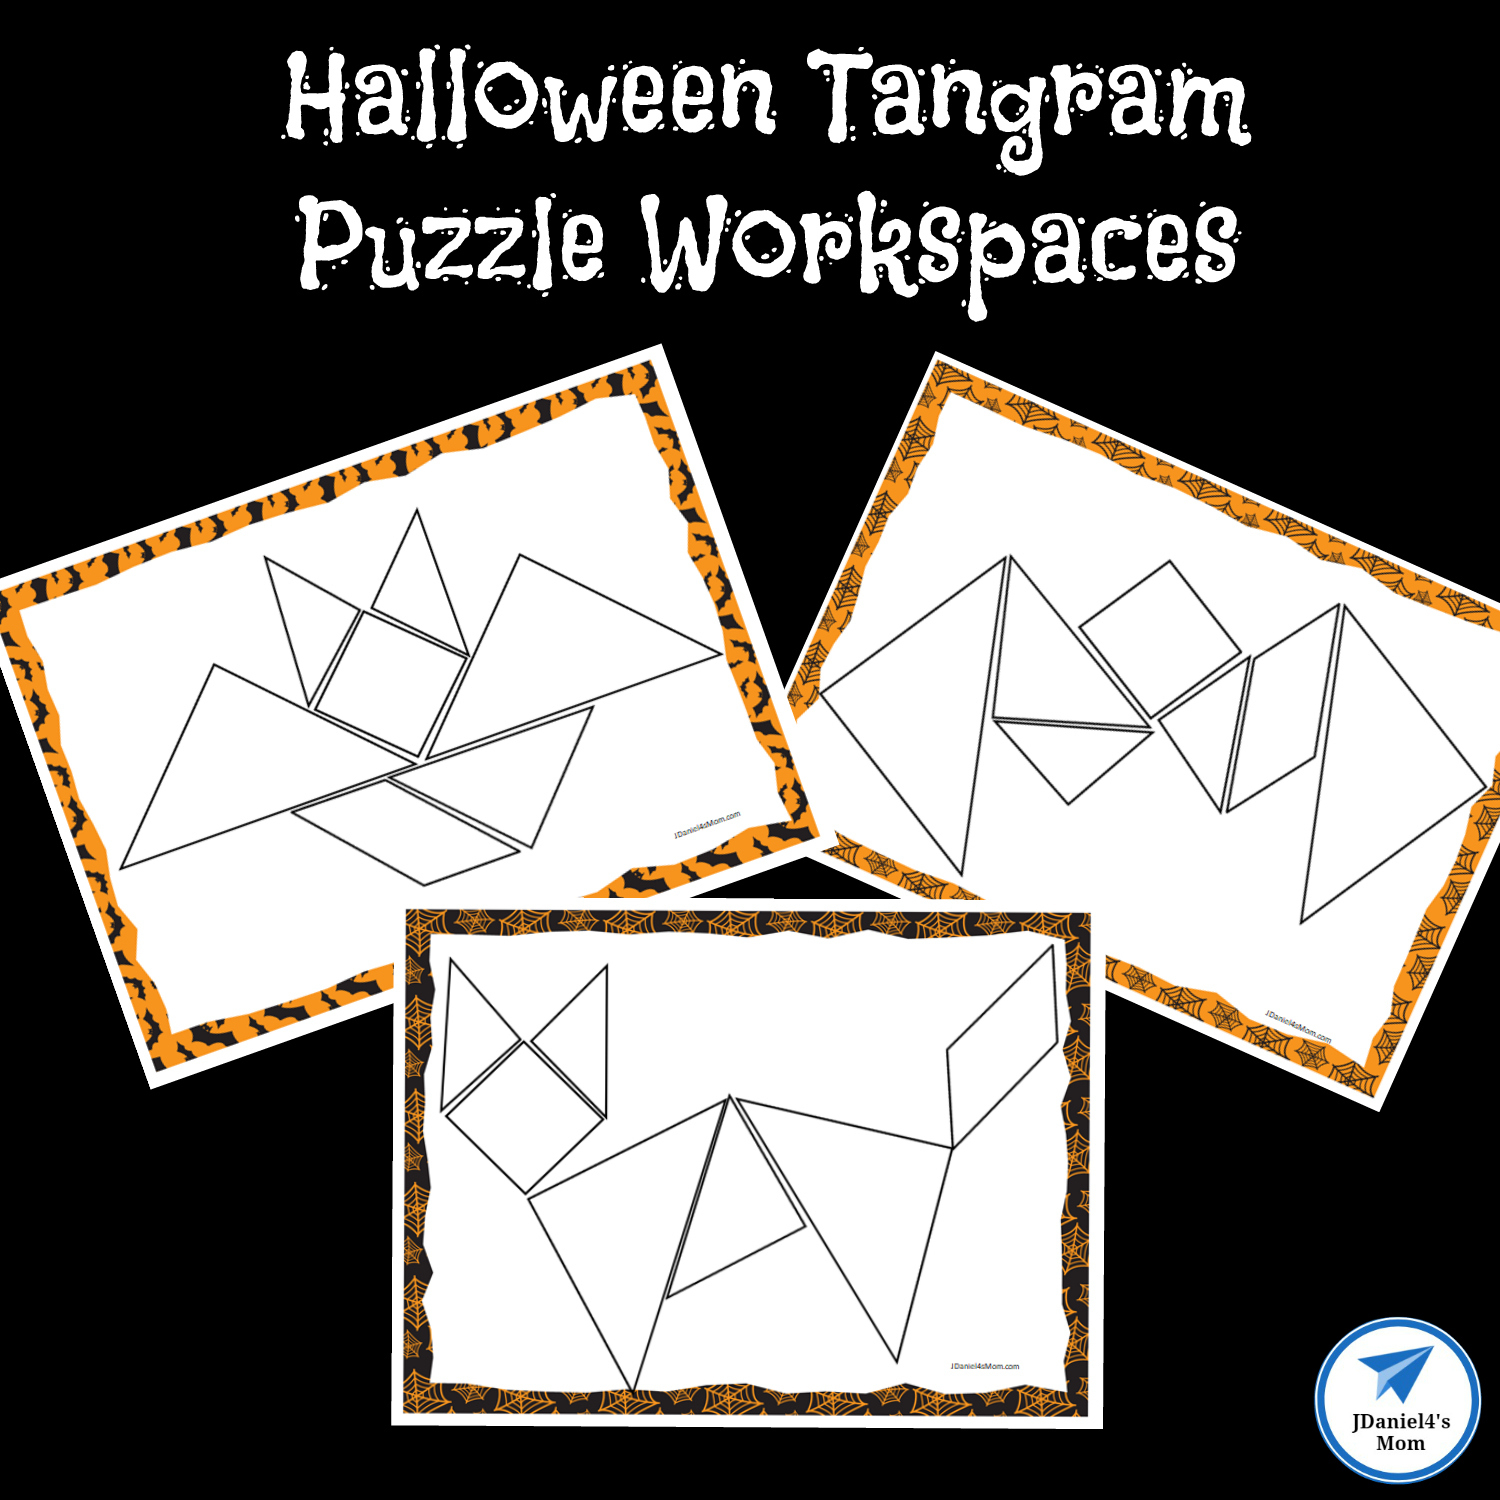 Halloween Themed Printable Tangram Puzzles - Jdaniel4S Mom | Tangram Worksheet Printable Free